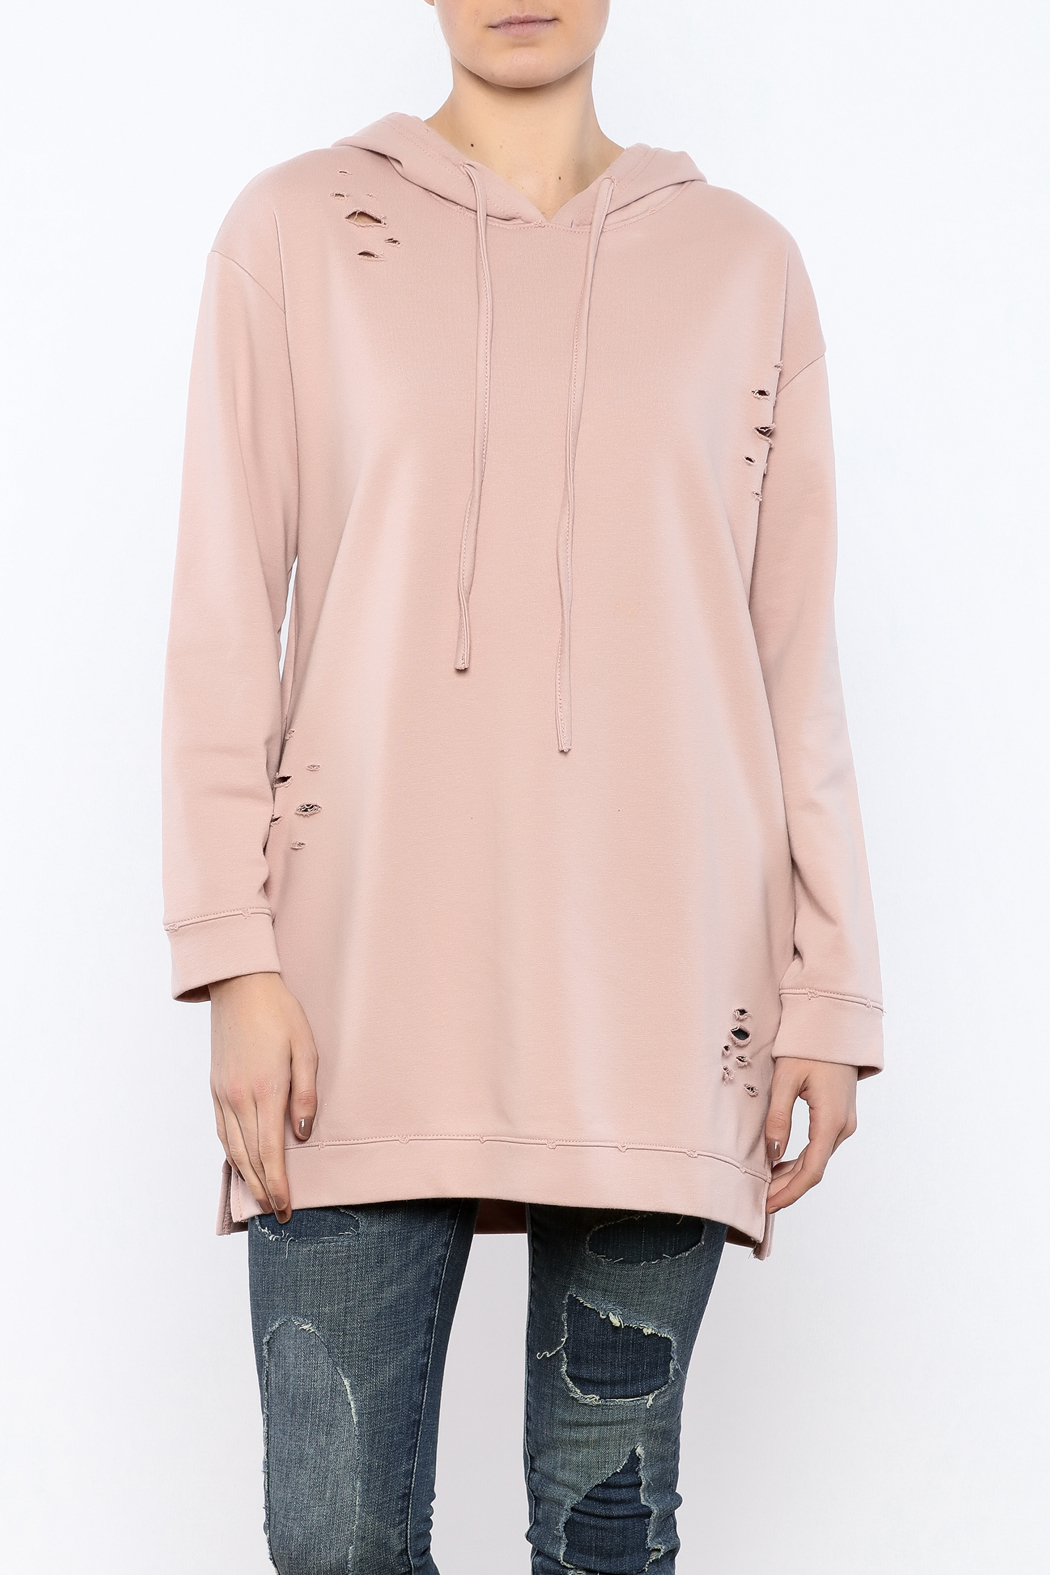 Honey Punch Distressed Sweatshirt Tunic from New York City ...